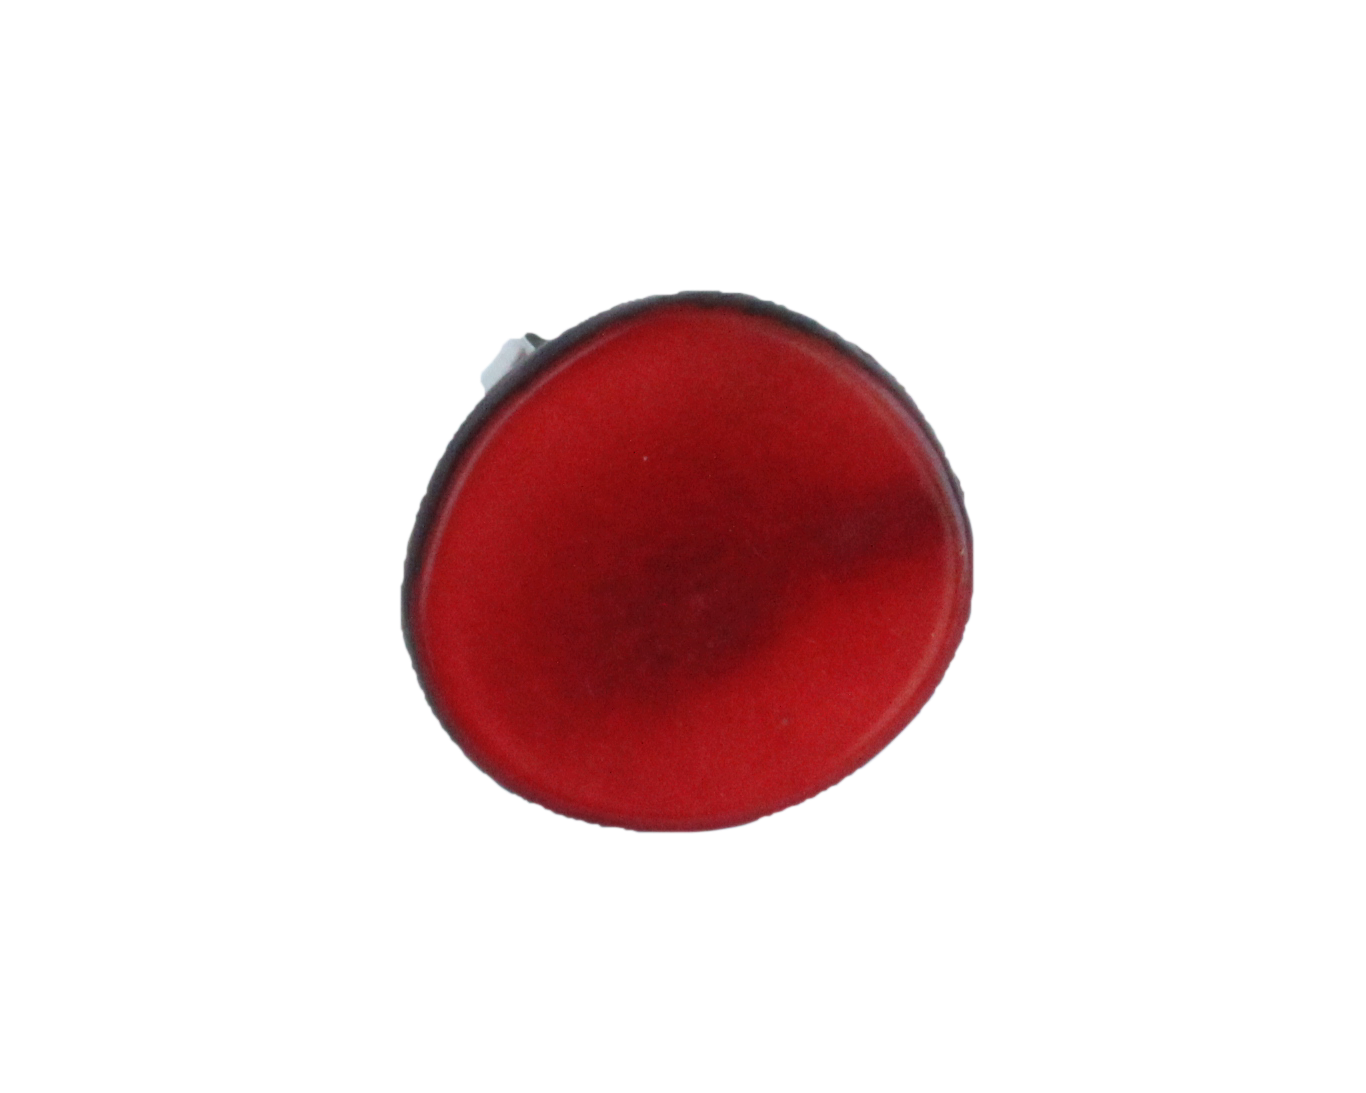 Handmade ring, tagua, red, adjustable ring size, sustainable, ethical, front